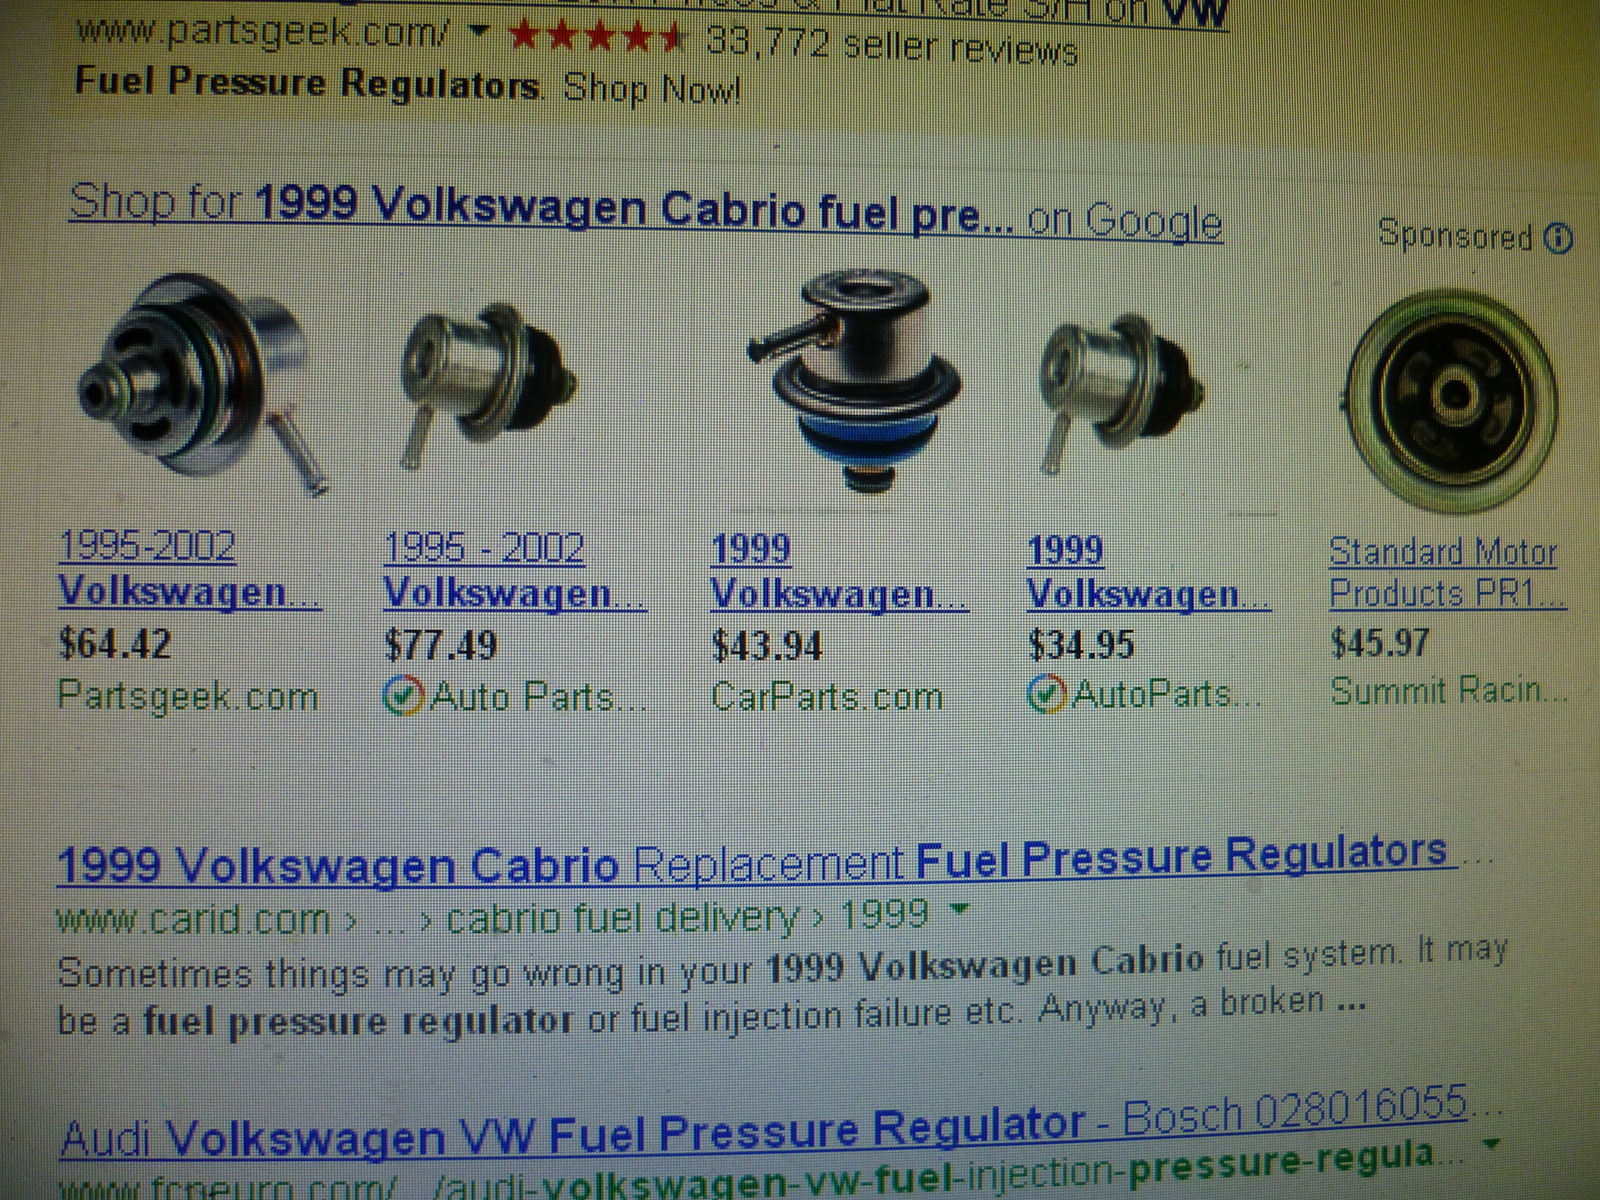 Volkswagen Cabrio Questions Why Is Car Losing Power Cargurus 2001 Beetle Fuse Cause Battery Box Repair 17 Answers